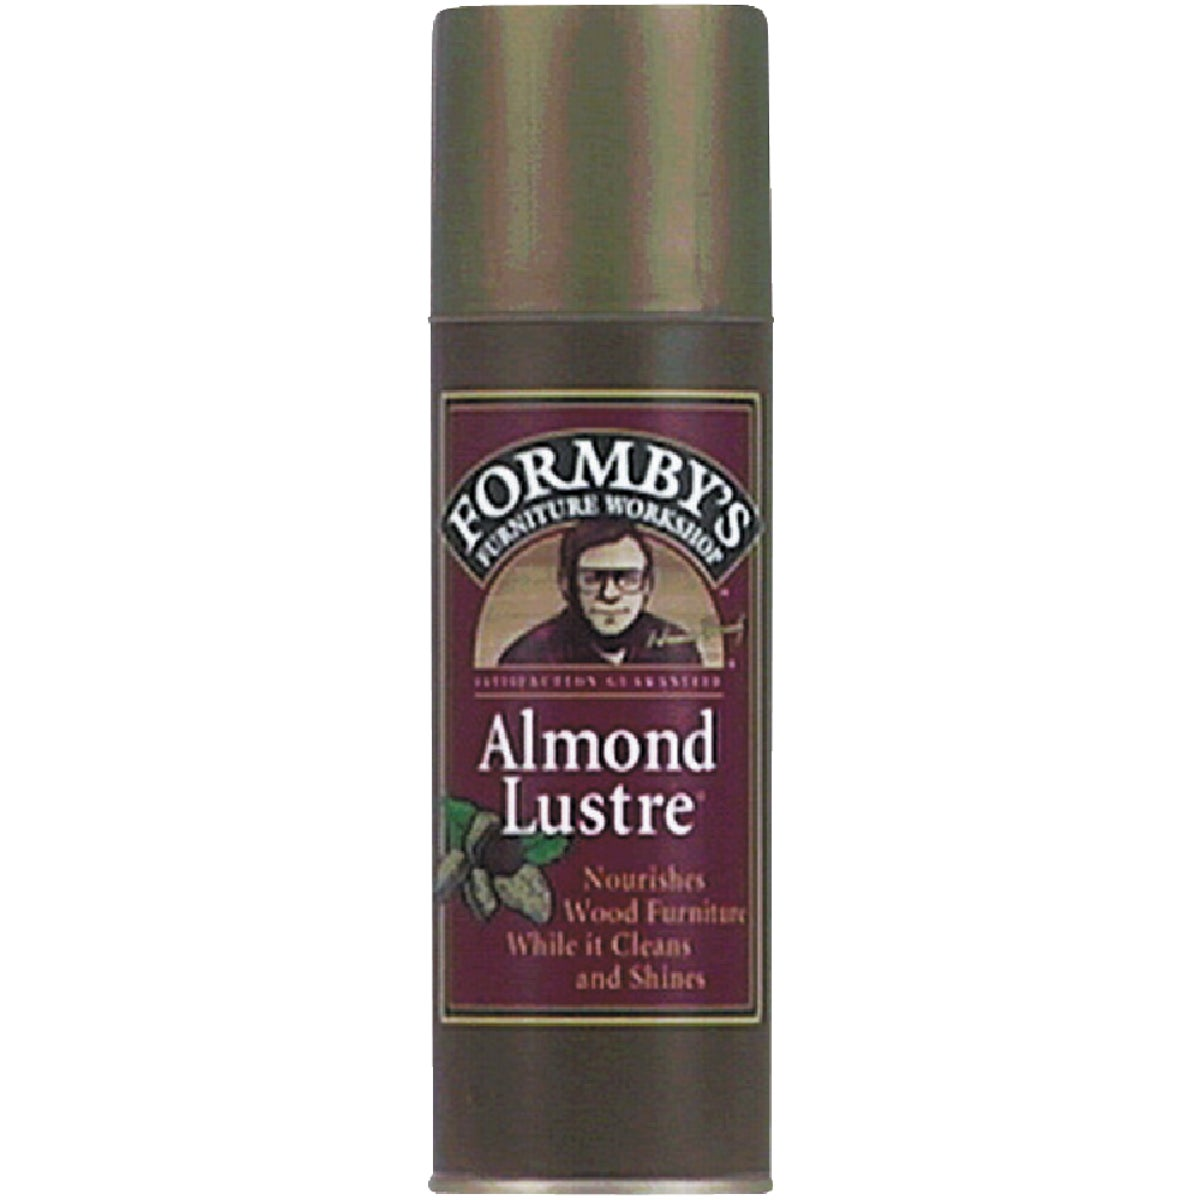 Formby's Almond Lustre Wood Polish, 30000